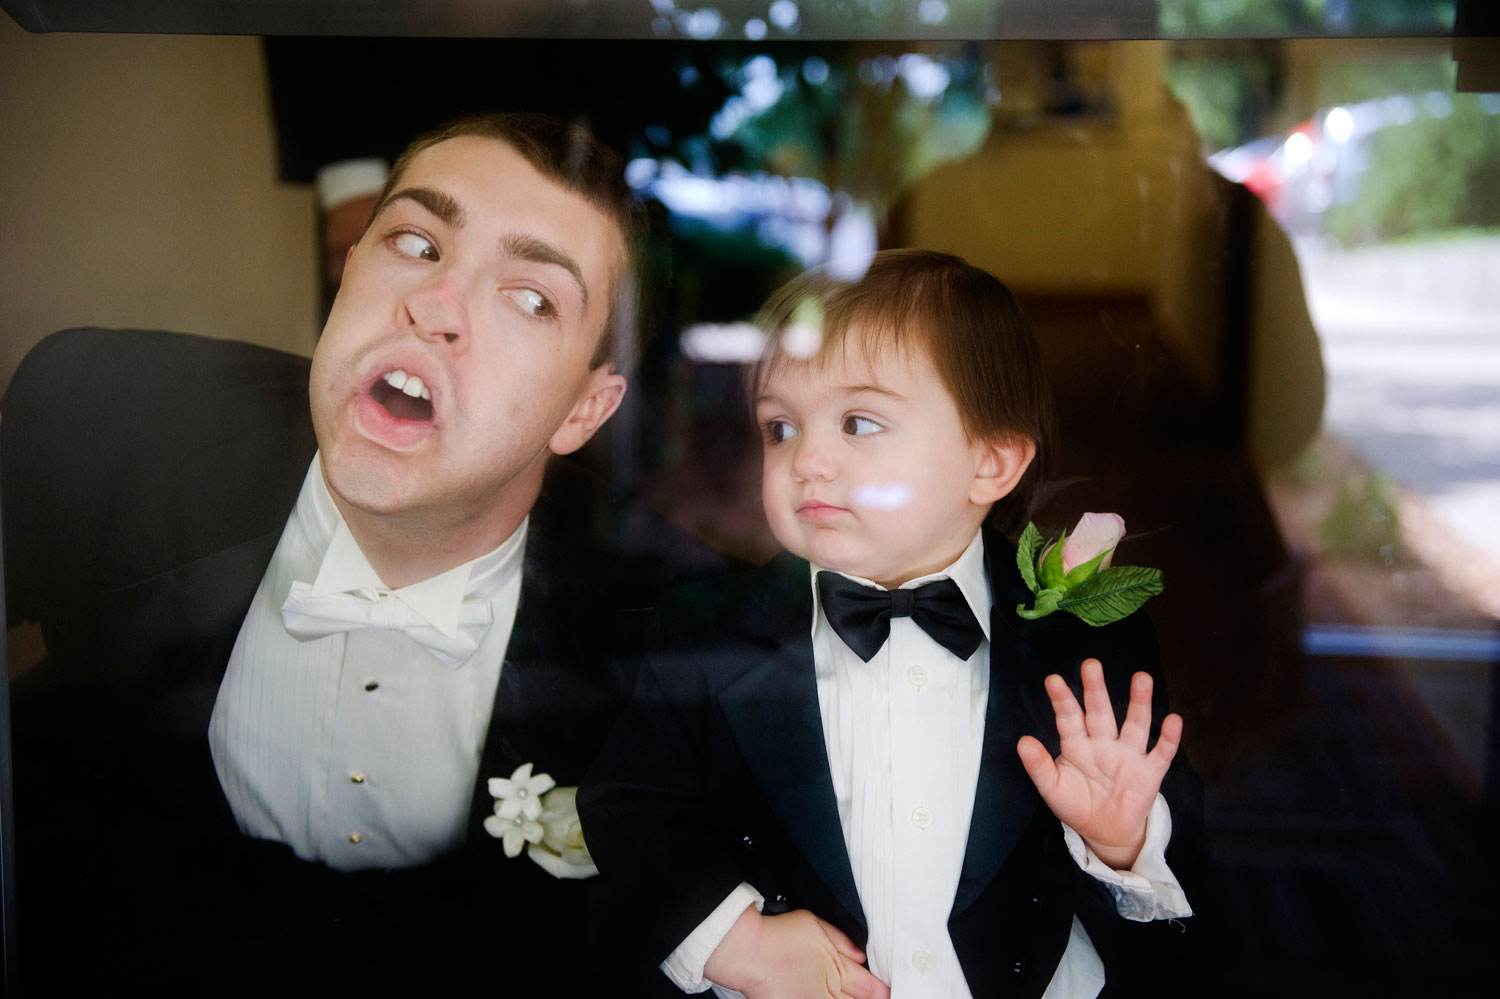 A groom and his ring bearer joke around while making silly faces into the glass while being photographed by pittsburgh wedding photographers Elizabeth Vincent Photography prior to their wedding reception at The Grand Concourse in downtown Pittsburgh, Pennsylvania.